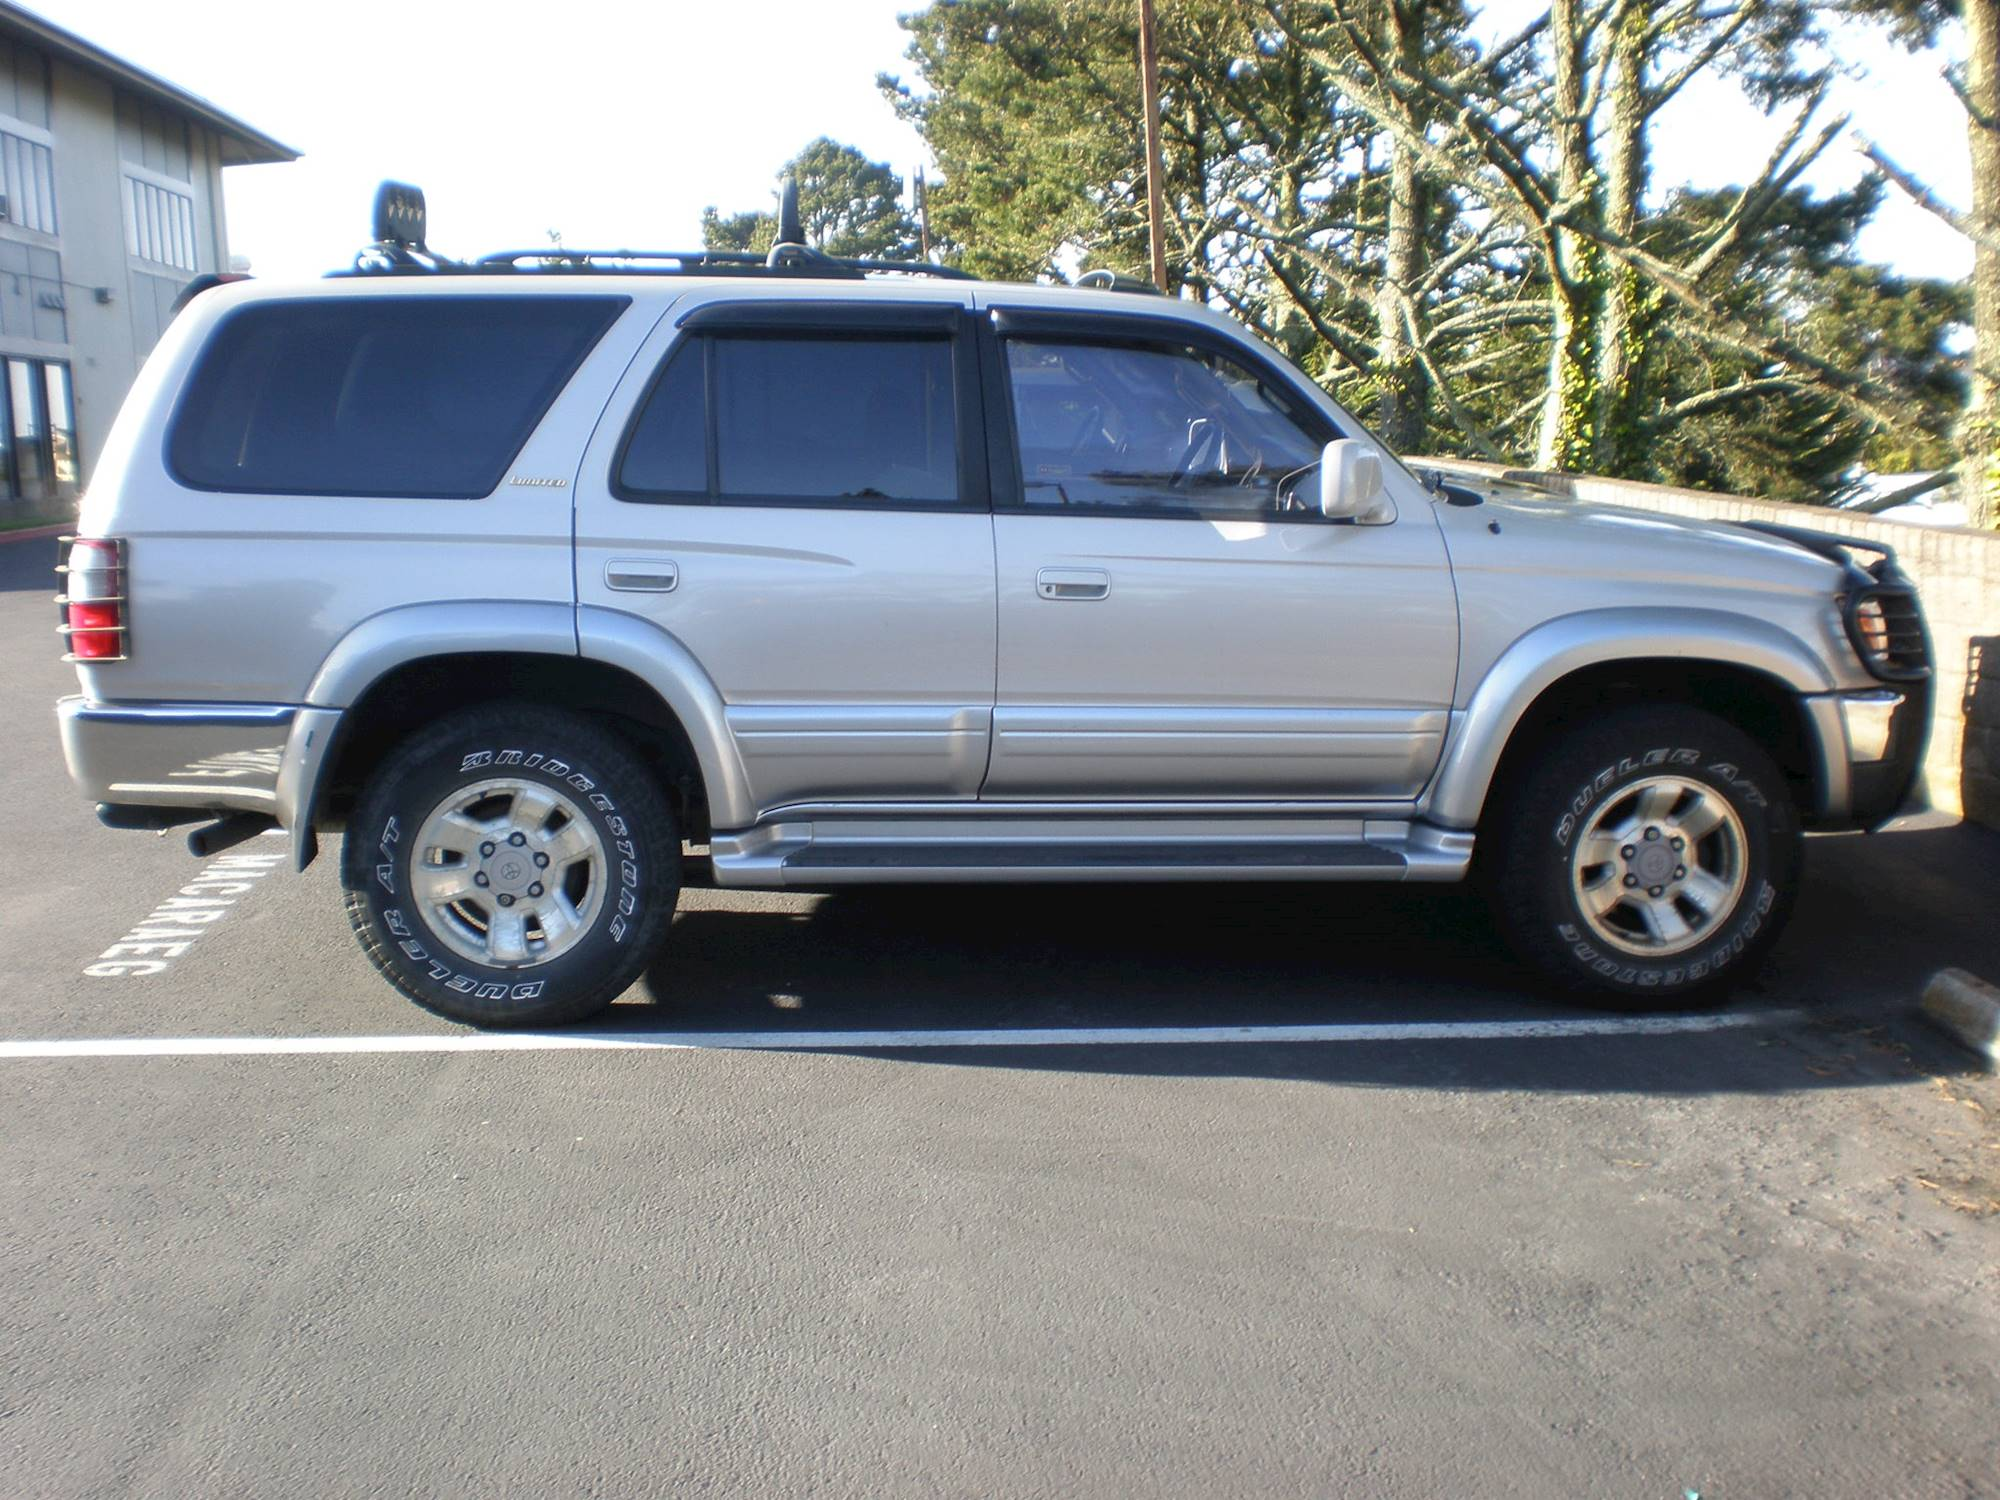 1997 toyota 4runner limited 4dr suv 3 4l v6 auto 1997 toyota 4runner limited 4dr suv 3